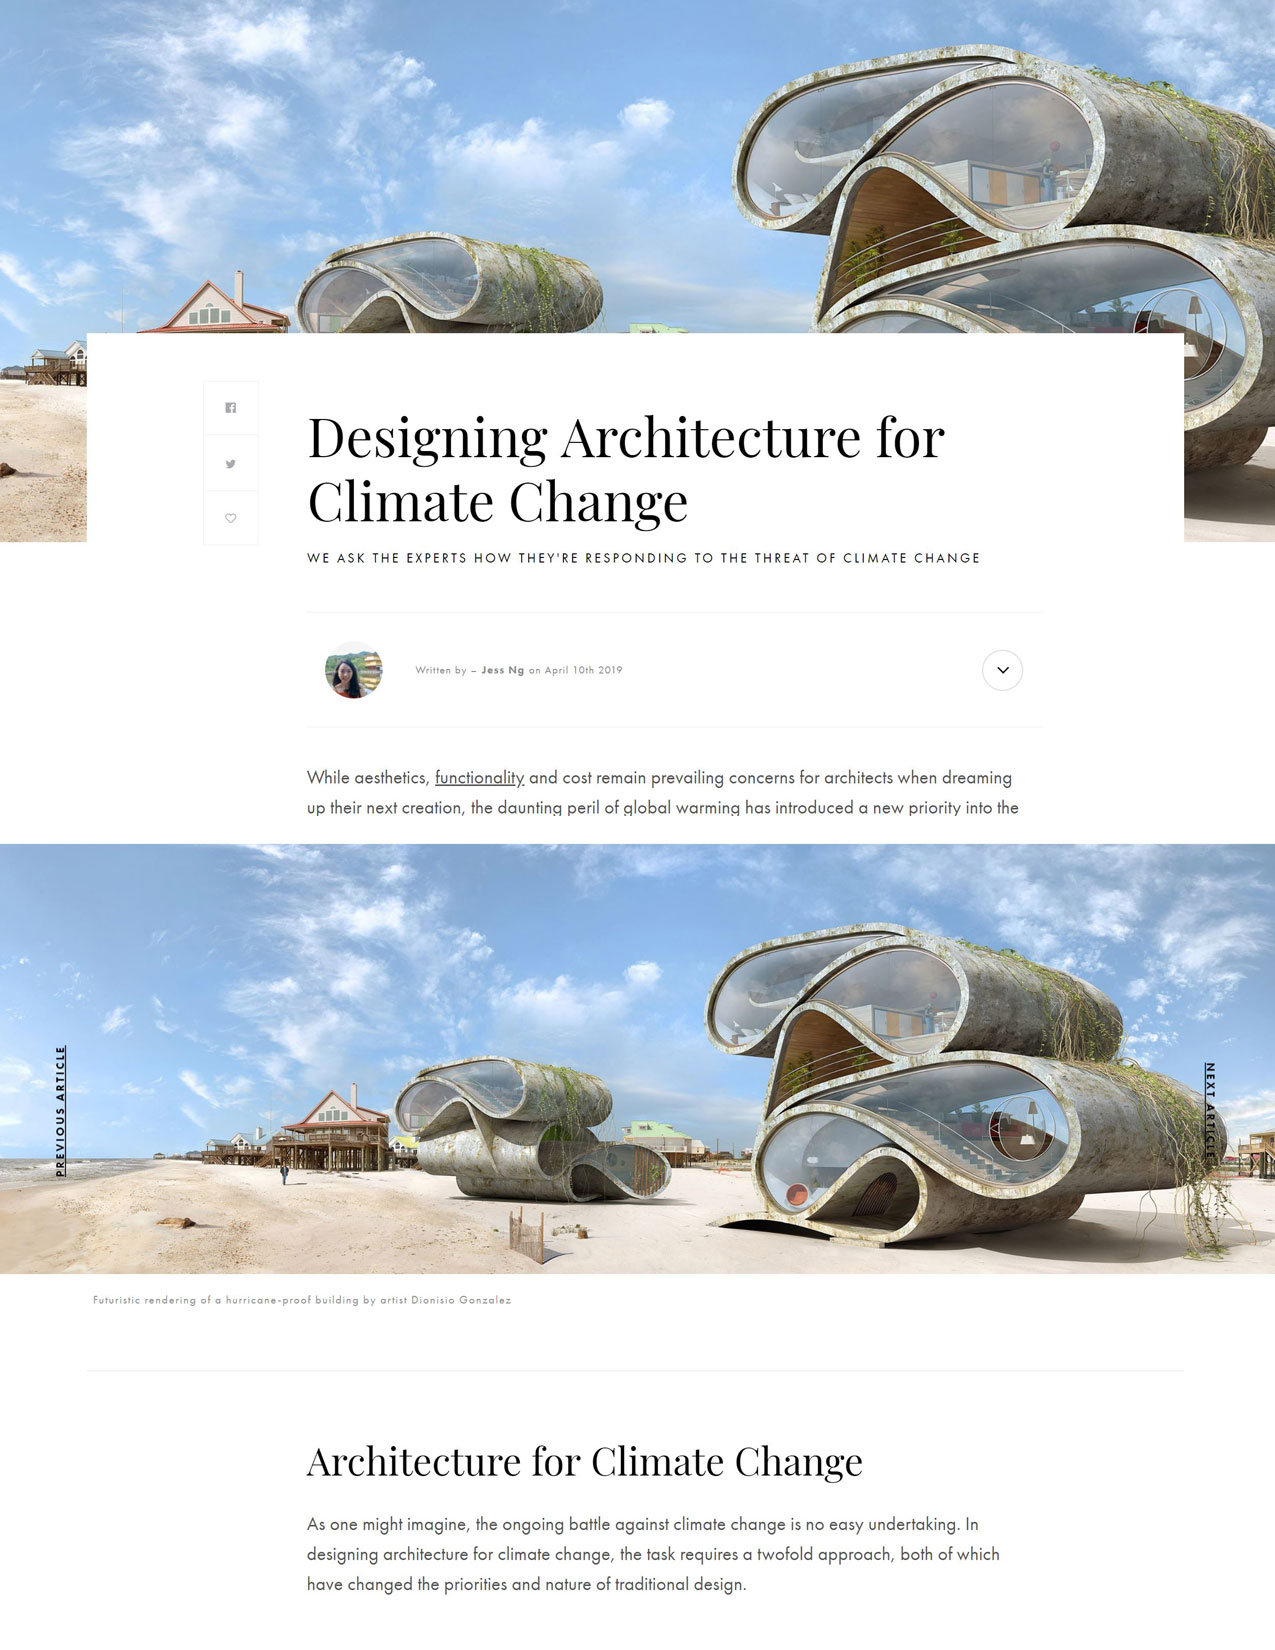 architecture for climate change; environmentally friendly building design